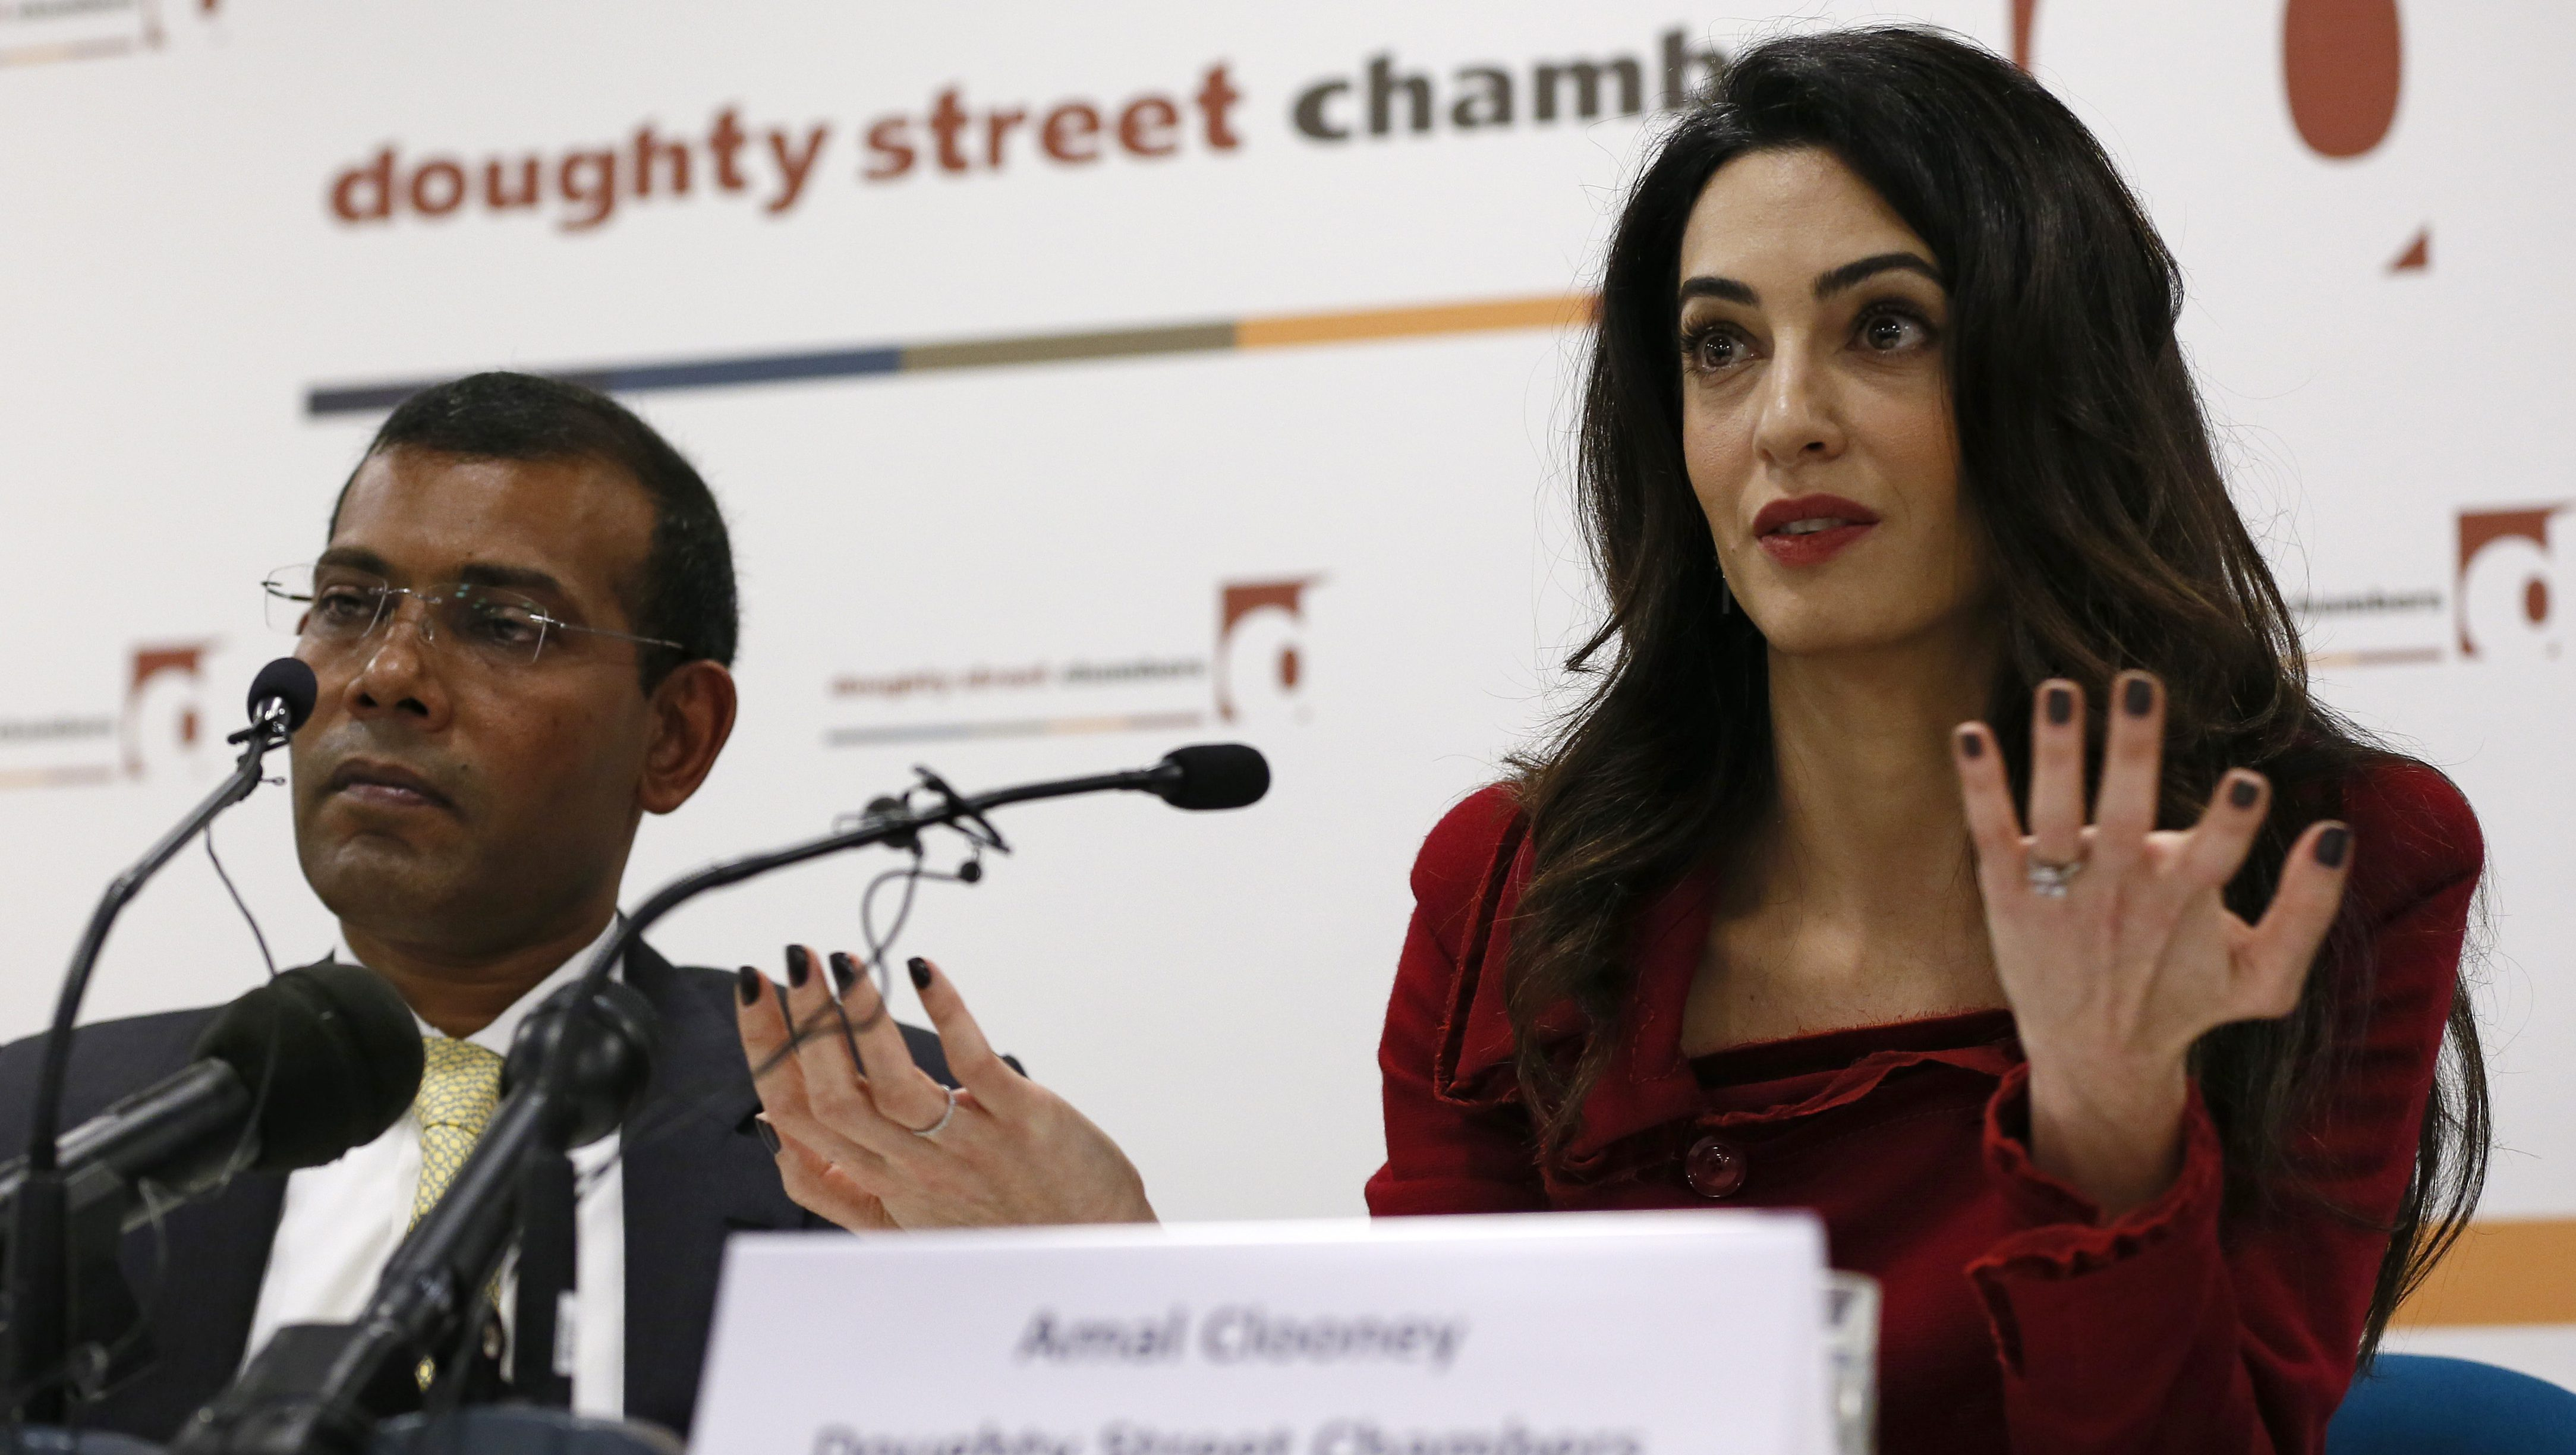 Lawyer Amal Clooney sits with Mohamed Nasheed during a news conference in central London, Britain January 25, 2016. Former president of the Maldives, Nasheed, freed from jail last week to seek medical care in Britain, called on Monday for sanctions against Maldivian government figures as his lawyer warned a militant attack on tourists was highly likely.